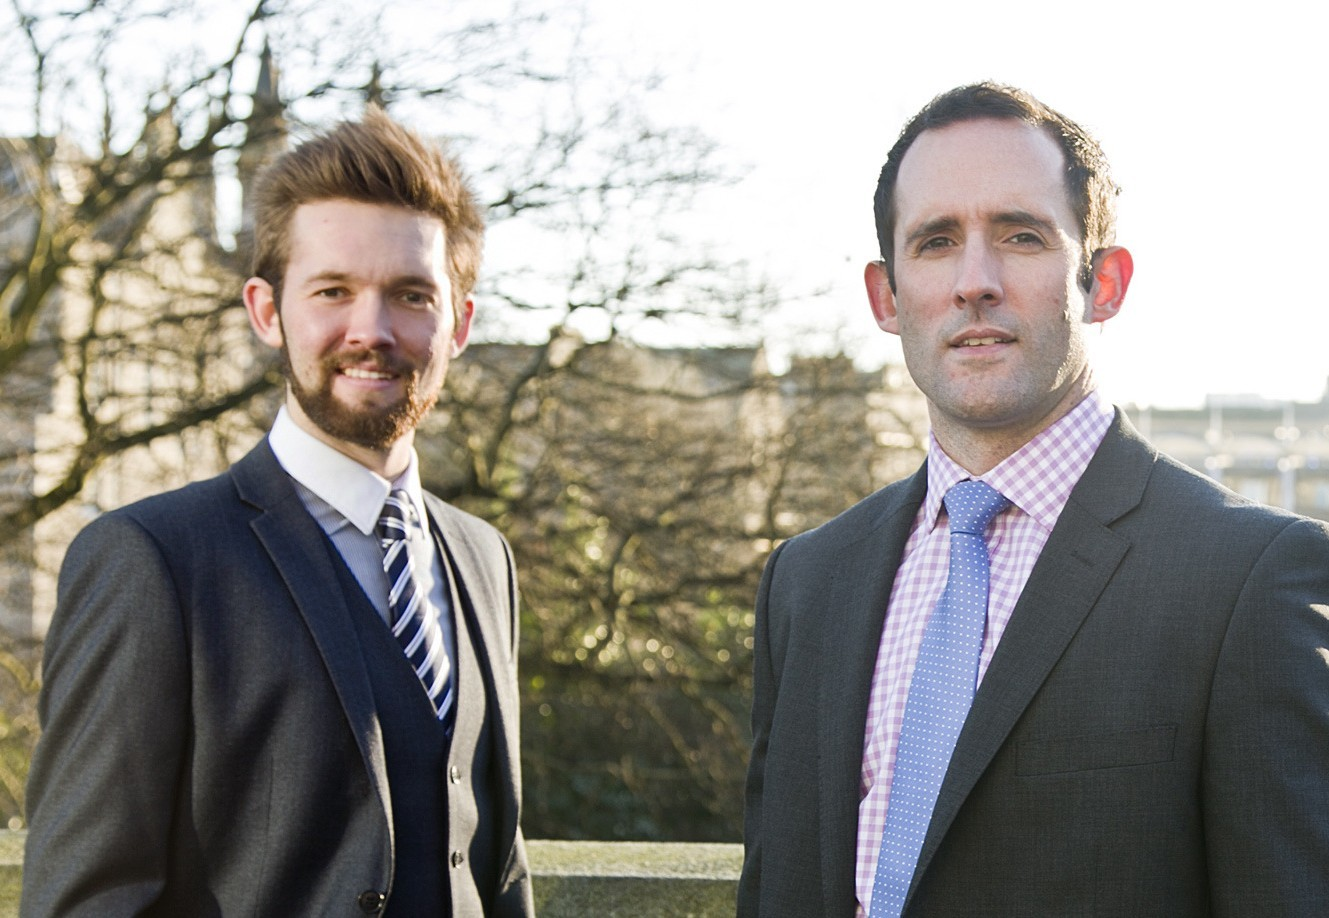 Craig Buchan and Shaun Windram of recruitment specialist Right People